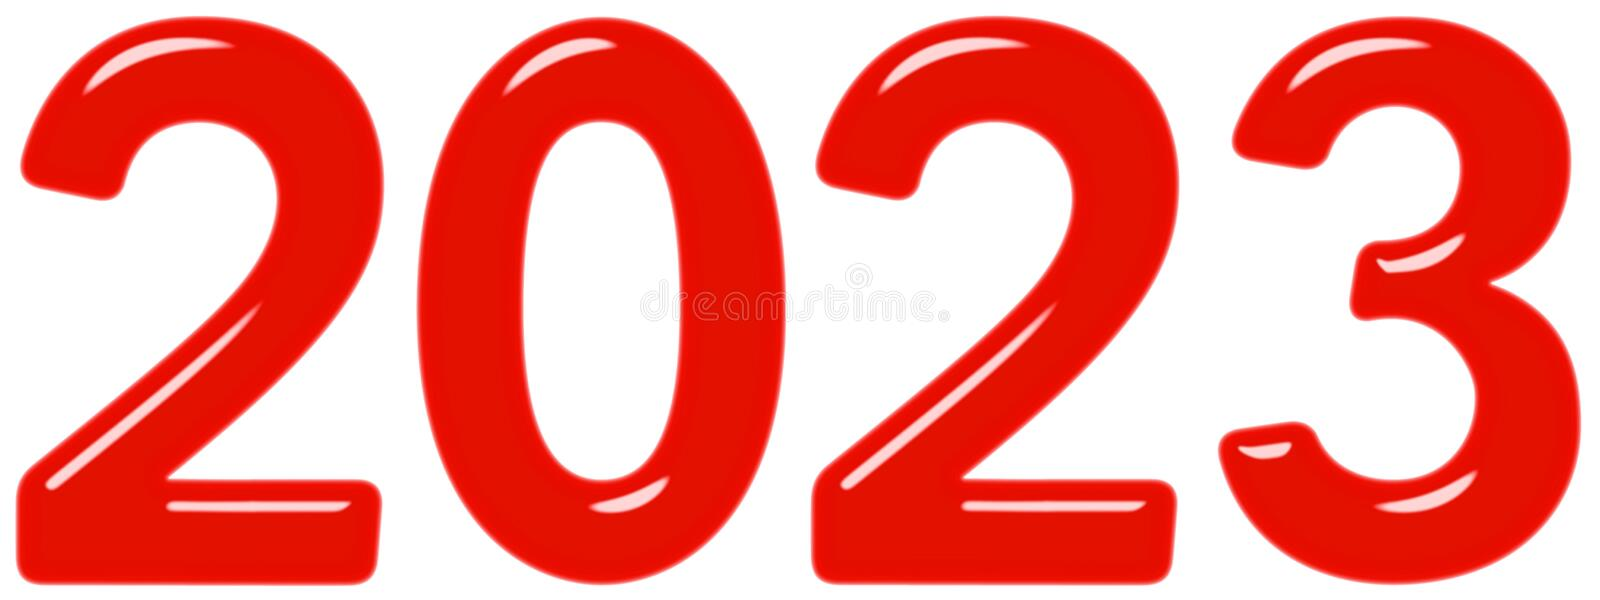 Inscription 2023 from red glass or plastic, isolated on white background, 3d render royalty free illustration